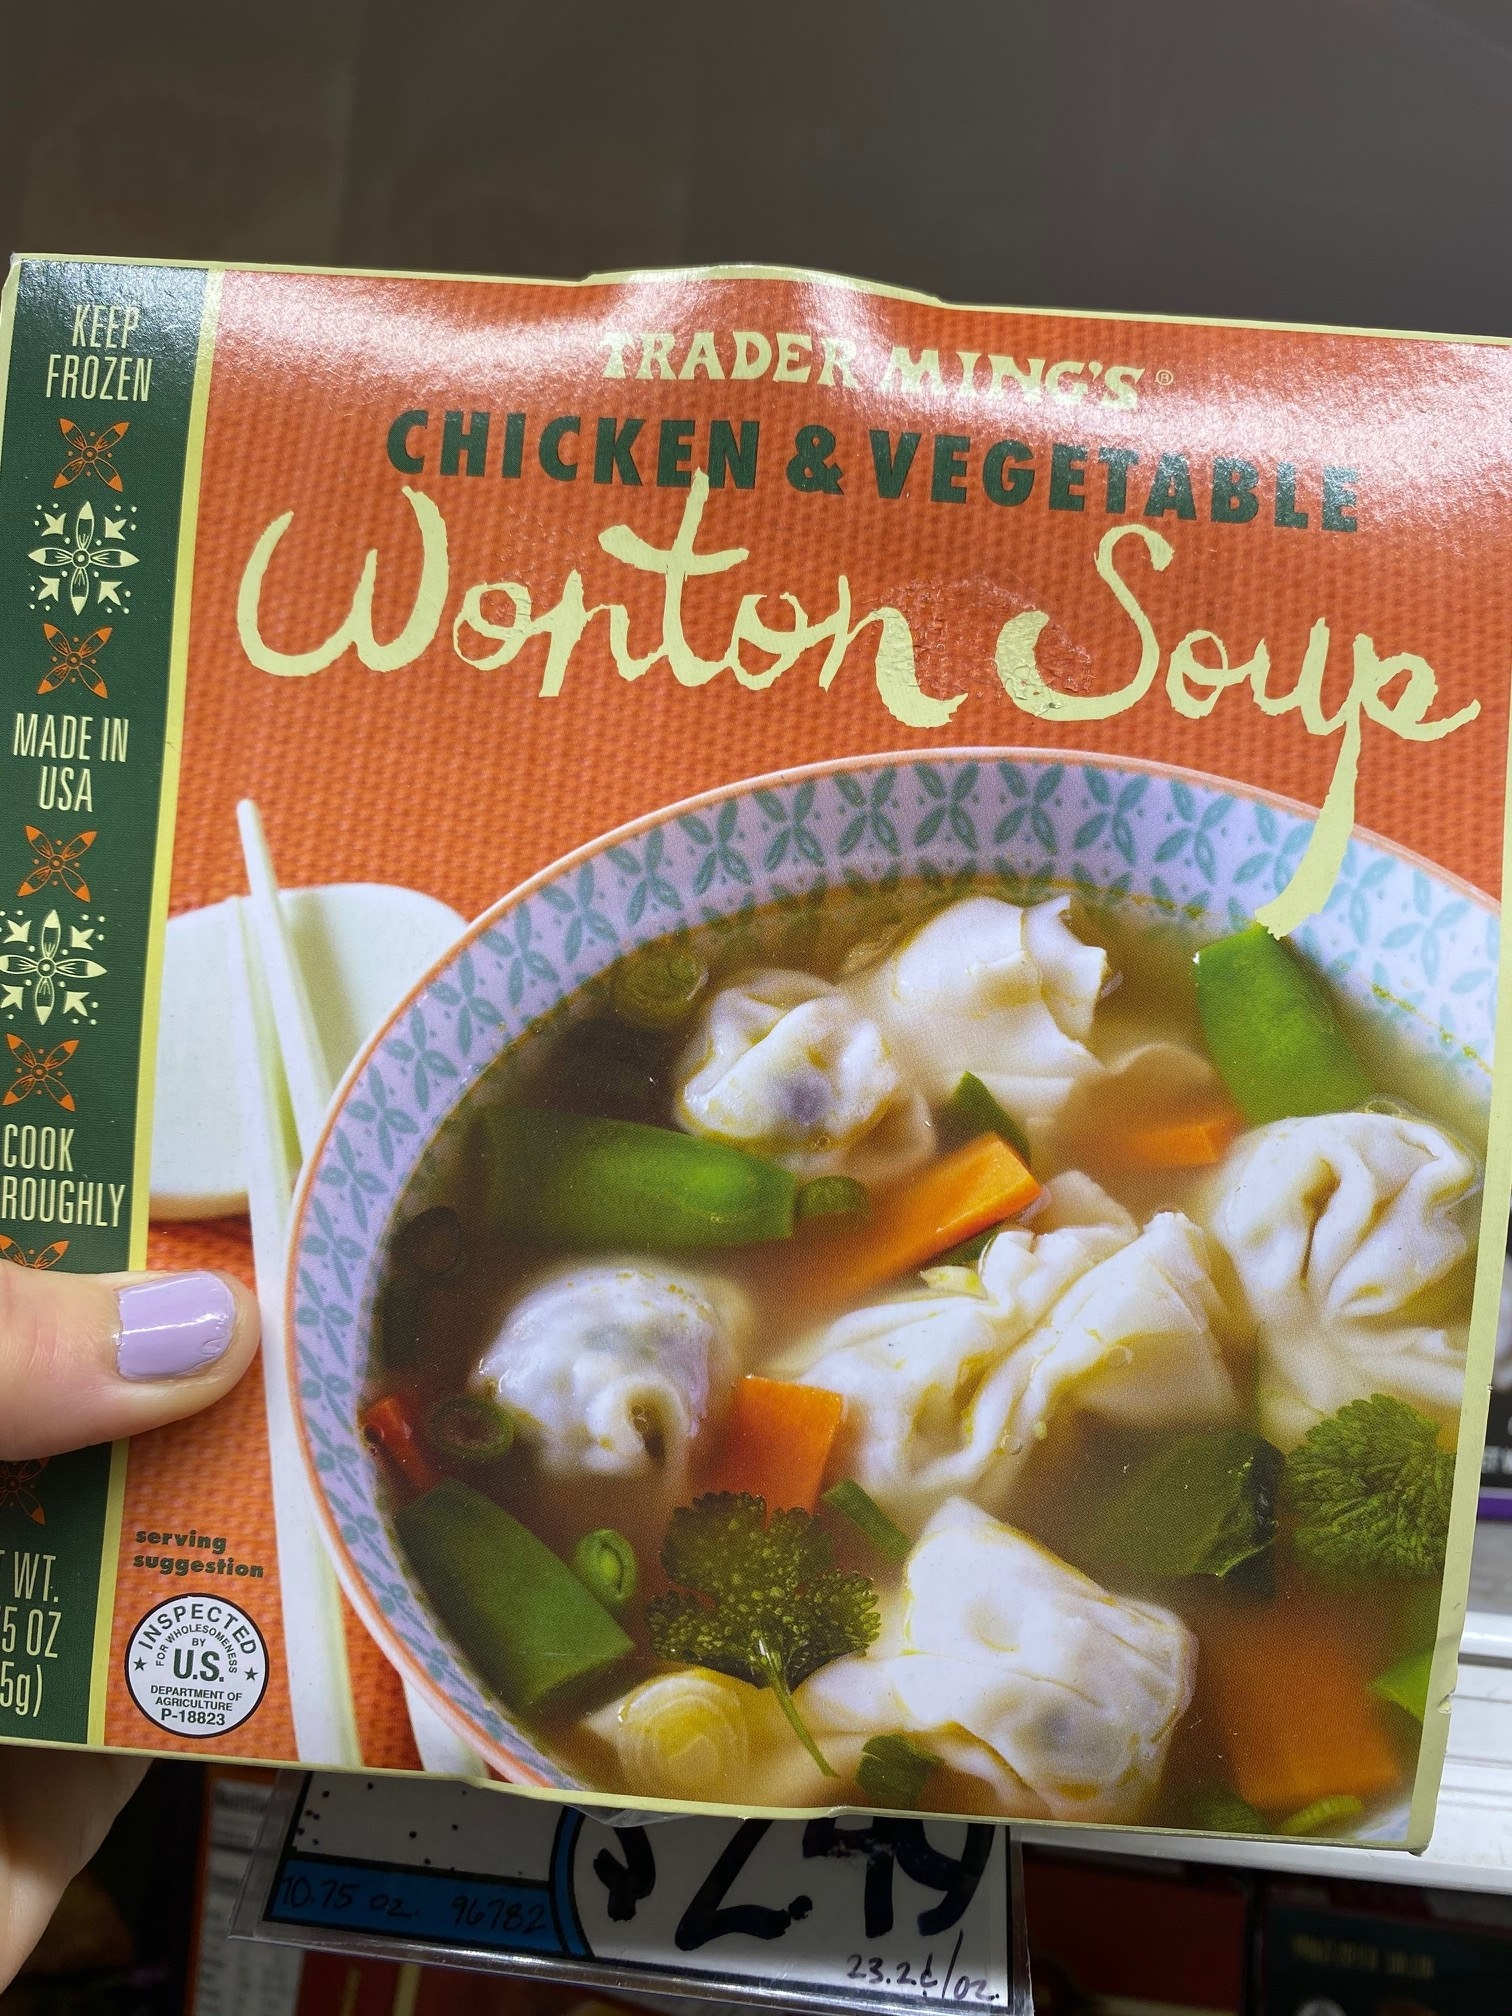 A box of Trader Joe's frozen chicken and vegetable wonton soup.